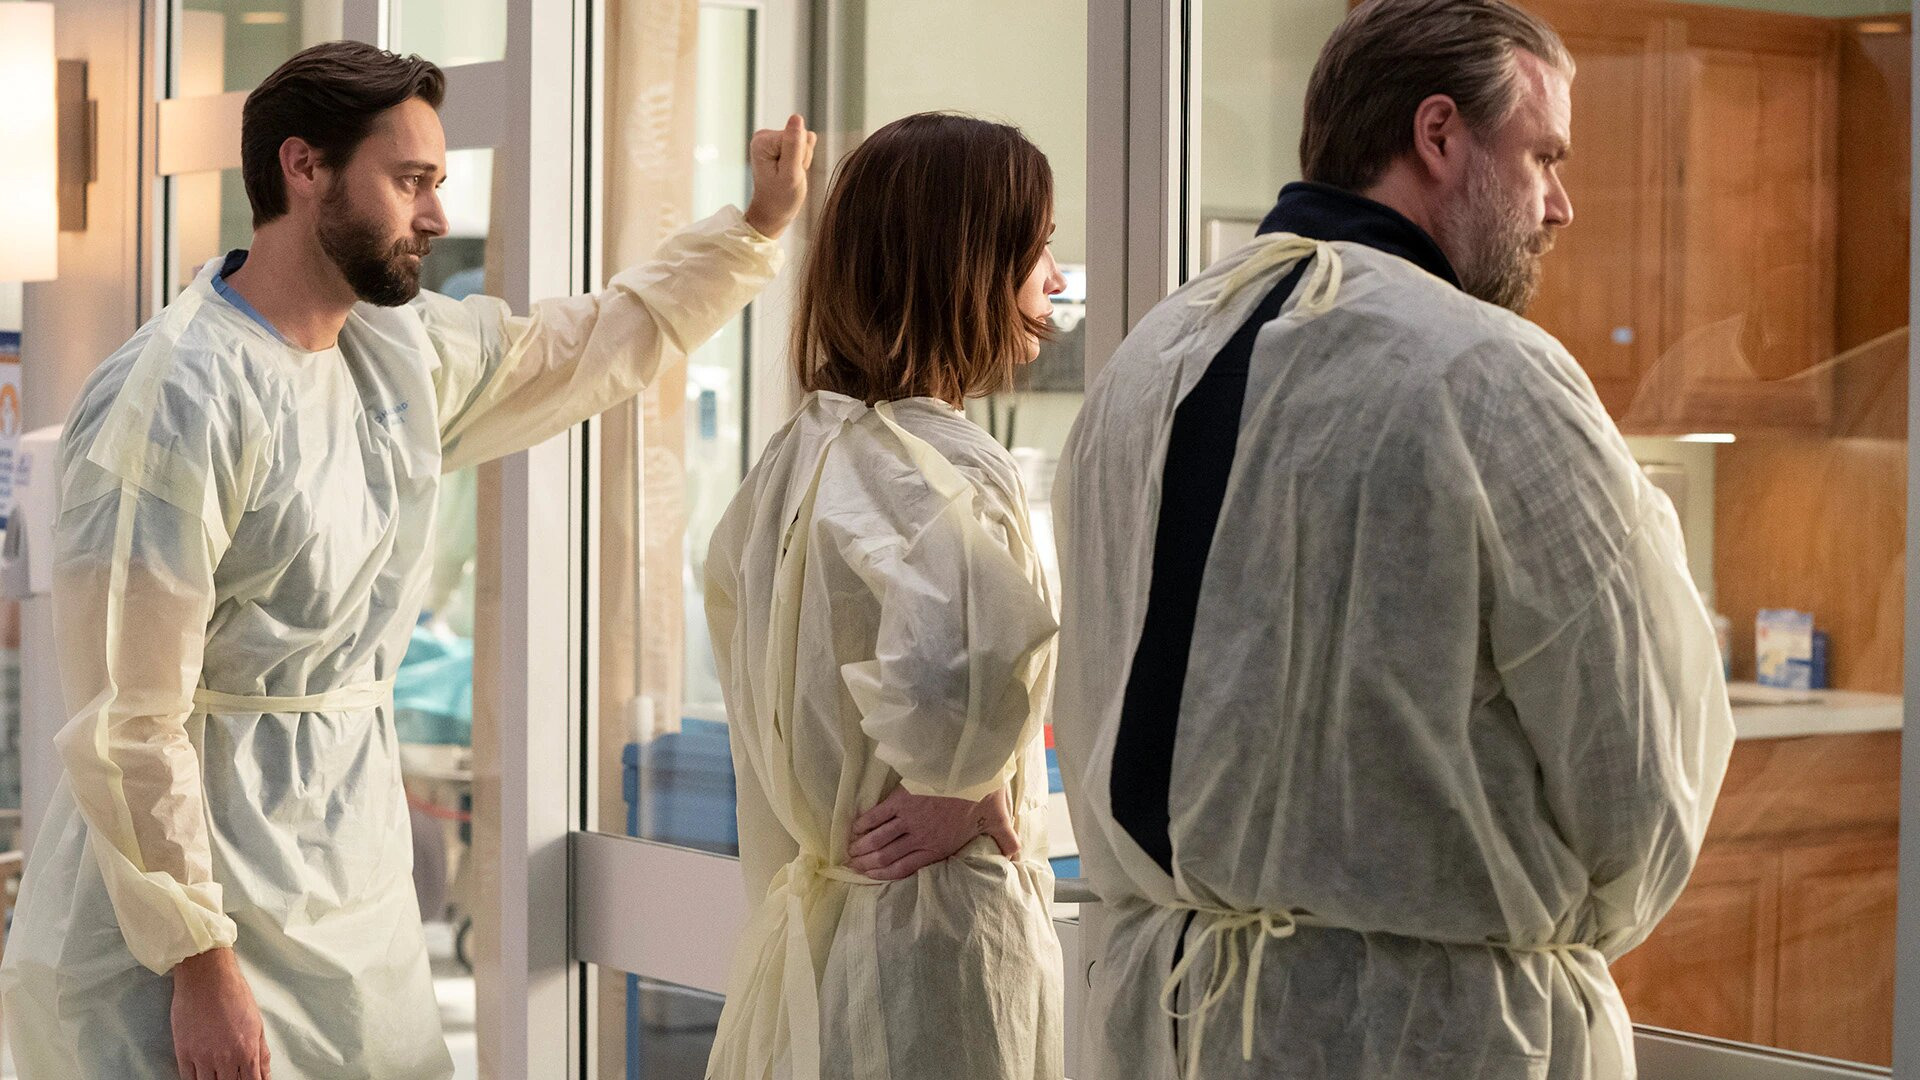 New Amsterdam — s03e02 — Essential Workers